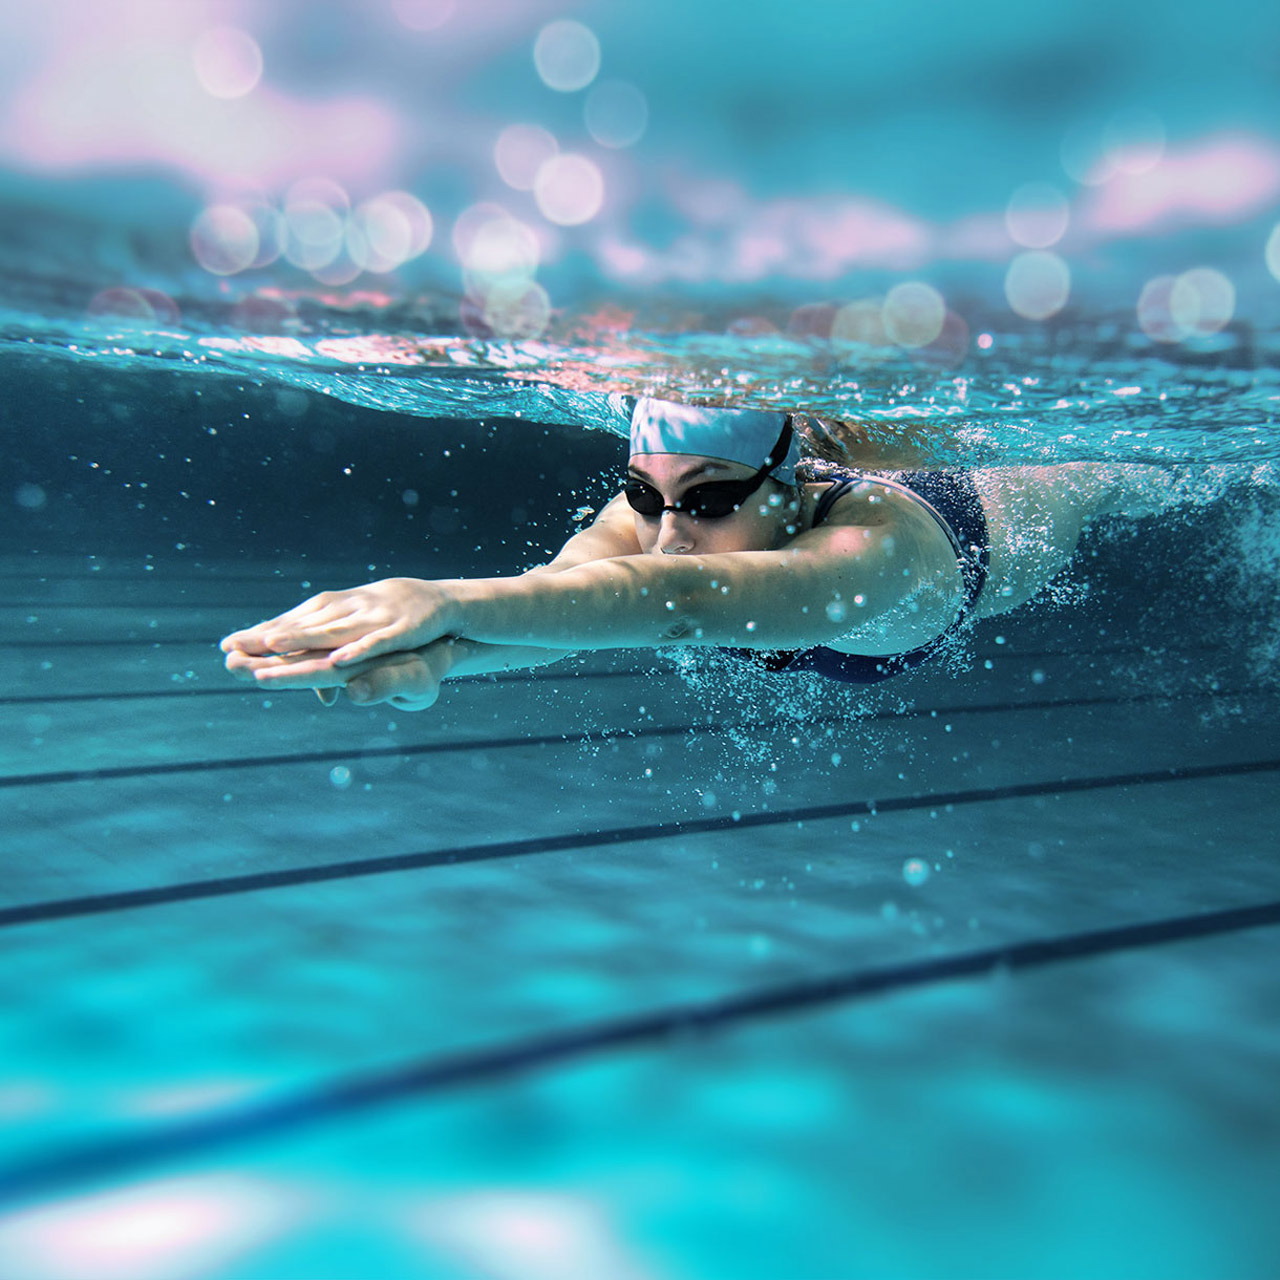 Underwatershot of swimmer in a pool